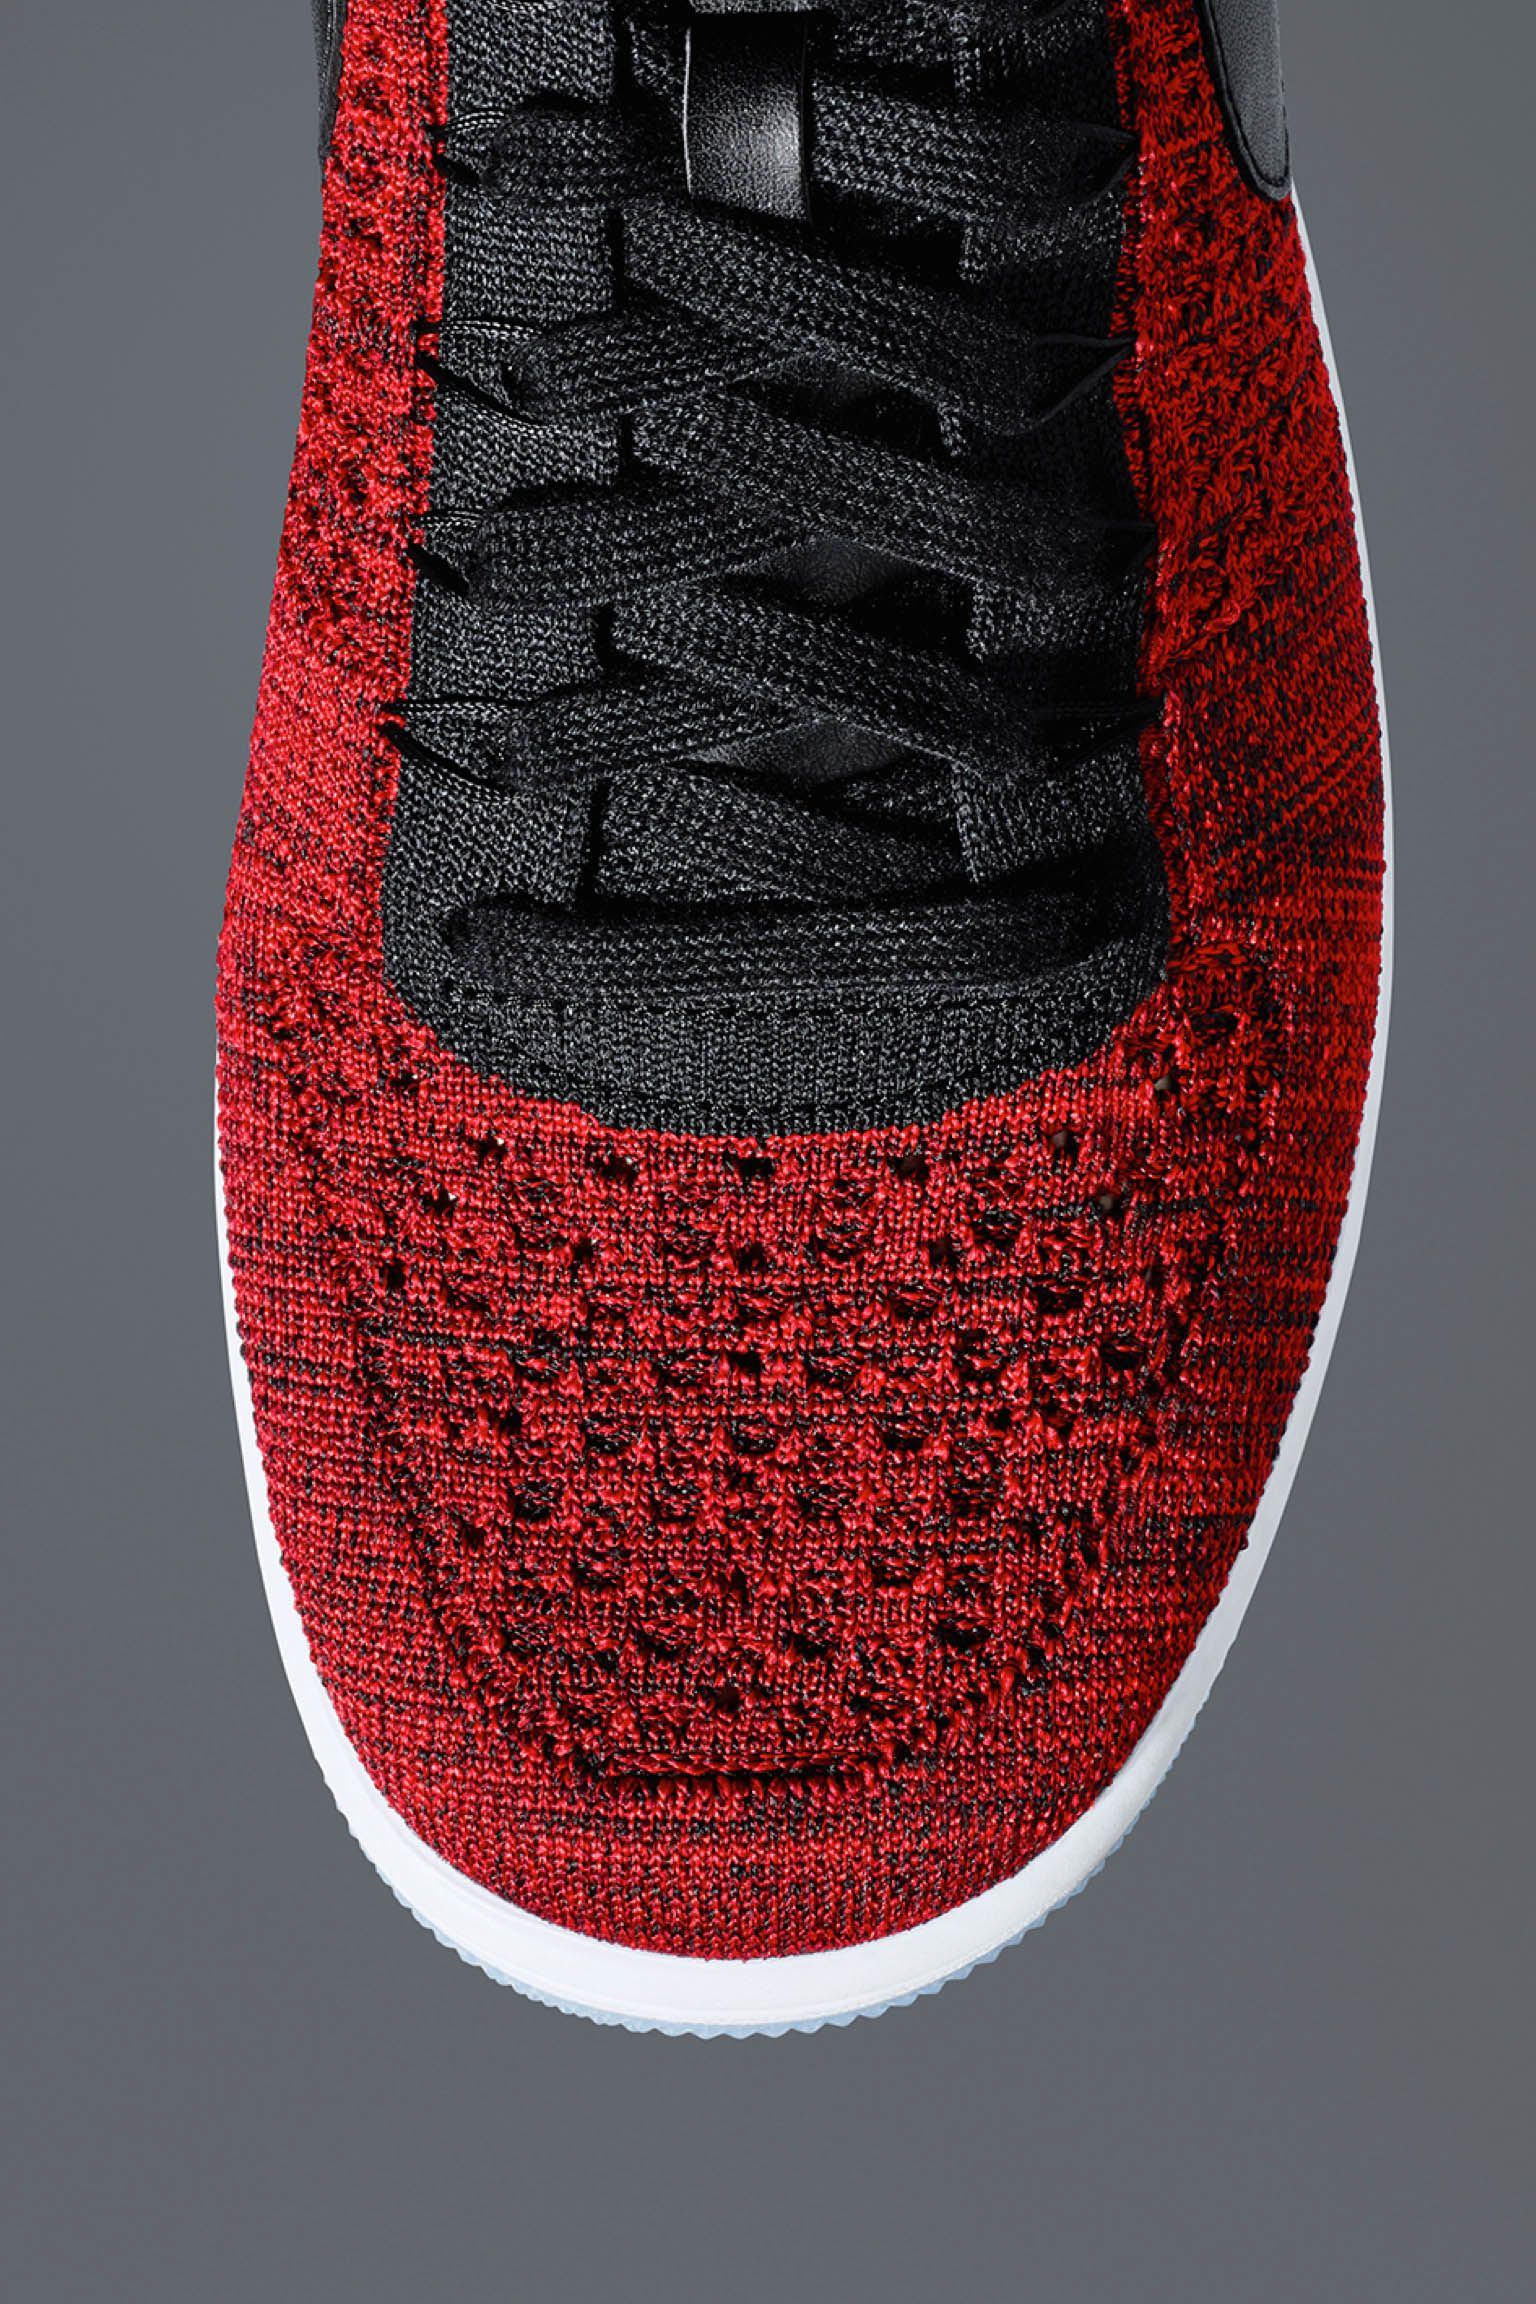 Nike Air Force 1 Ultra Flyknit 'University Red & Black' Release Date